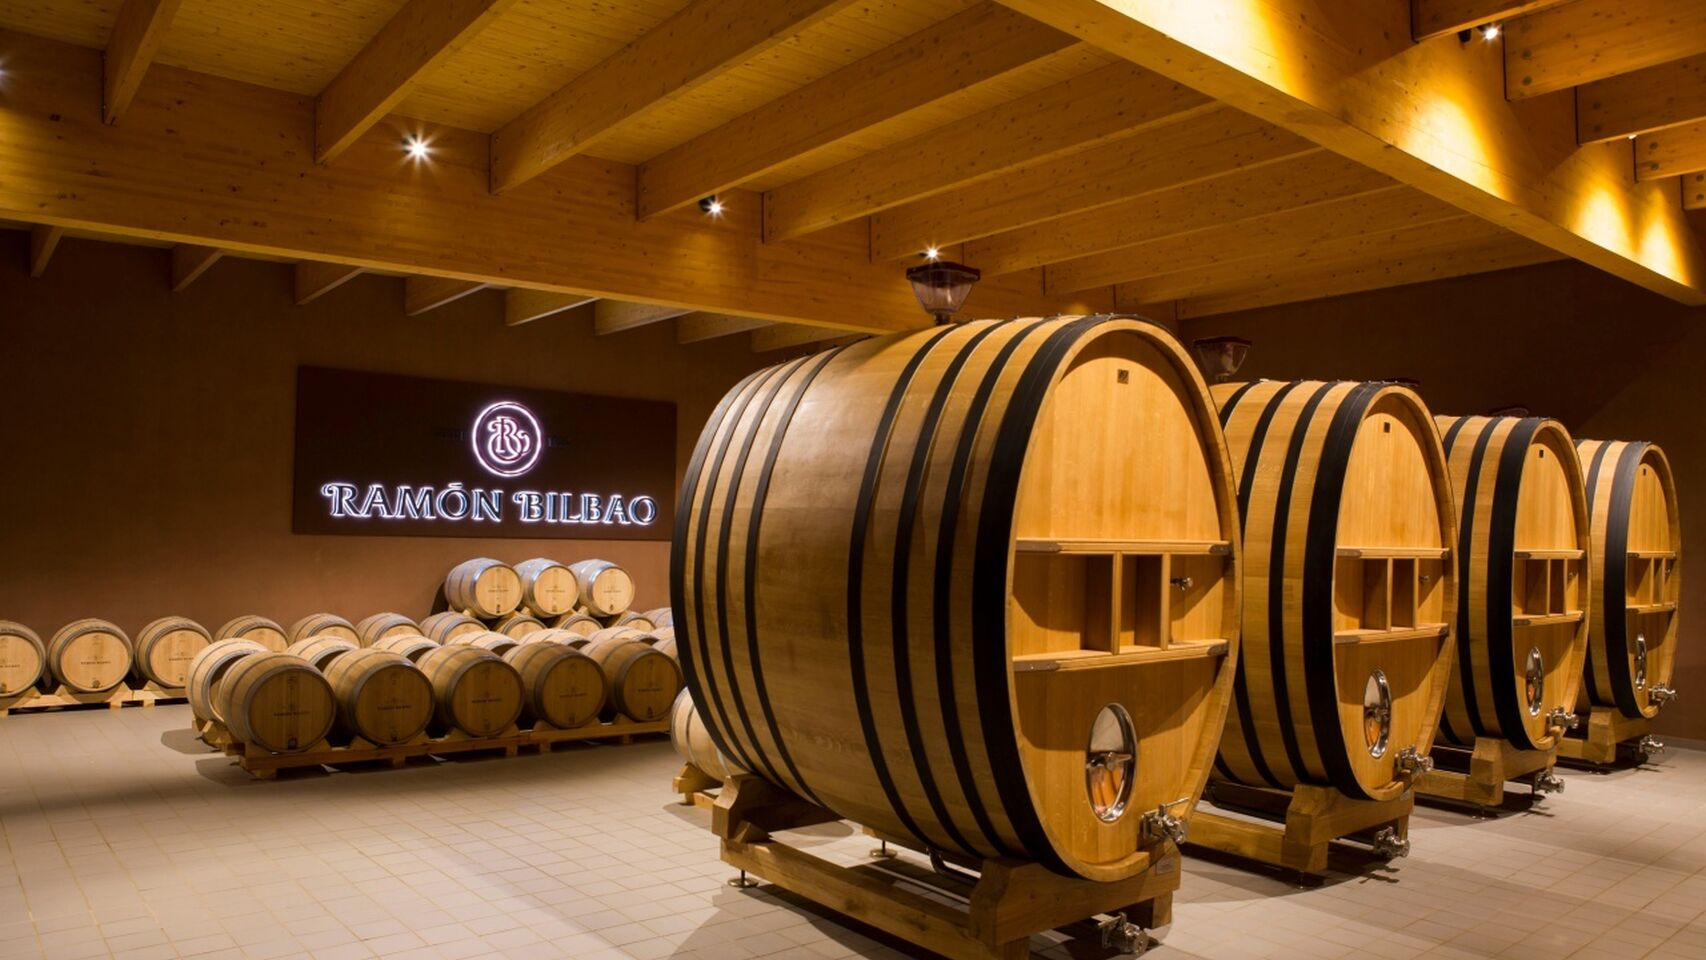 ramon bilbao barrel room